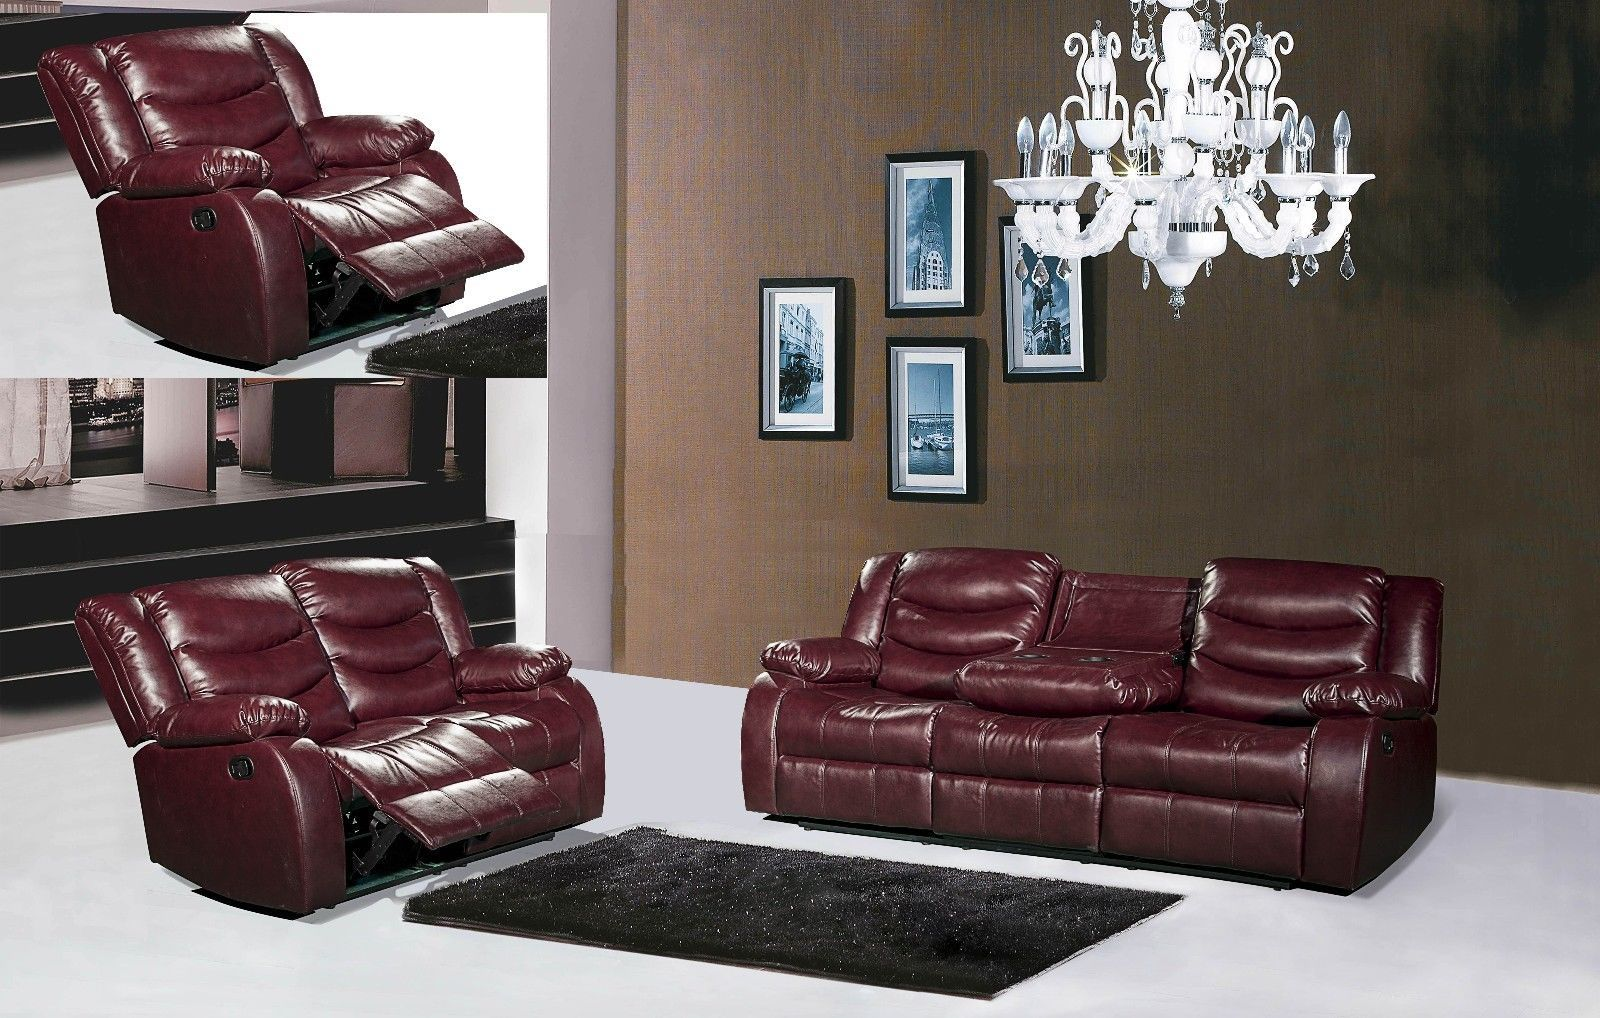 Meridian 644 Bonded Leather Living Room Sofa Set 3pc.Burgundy Contemporary Style